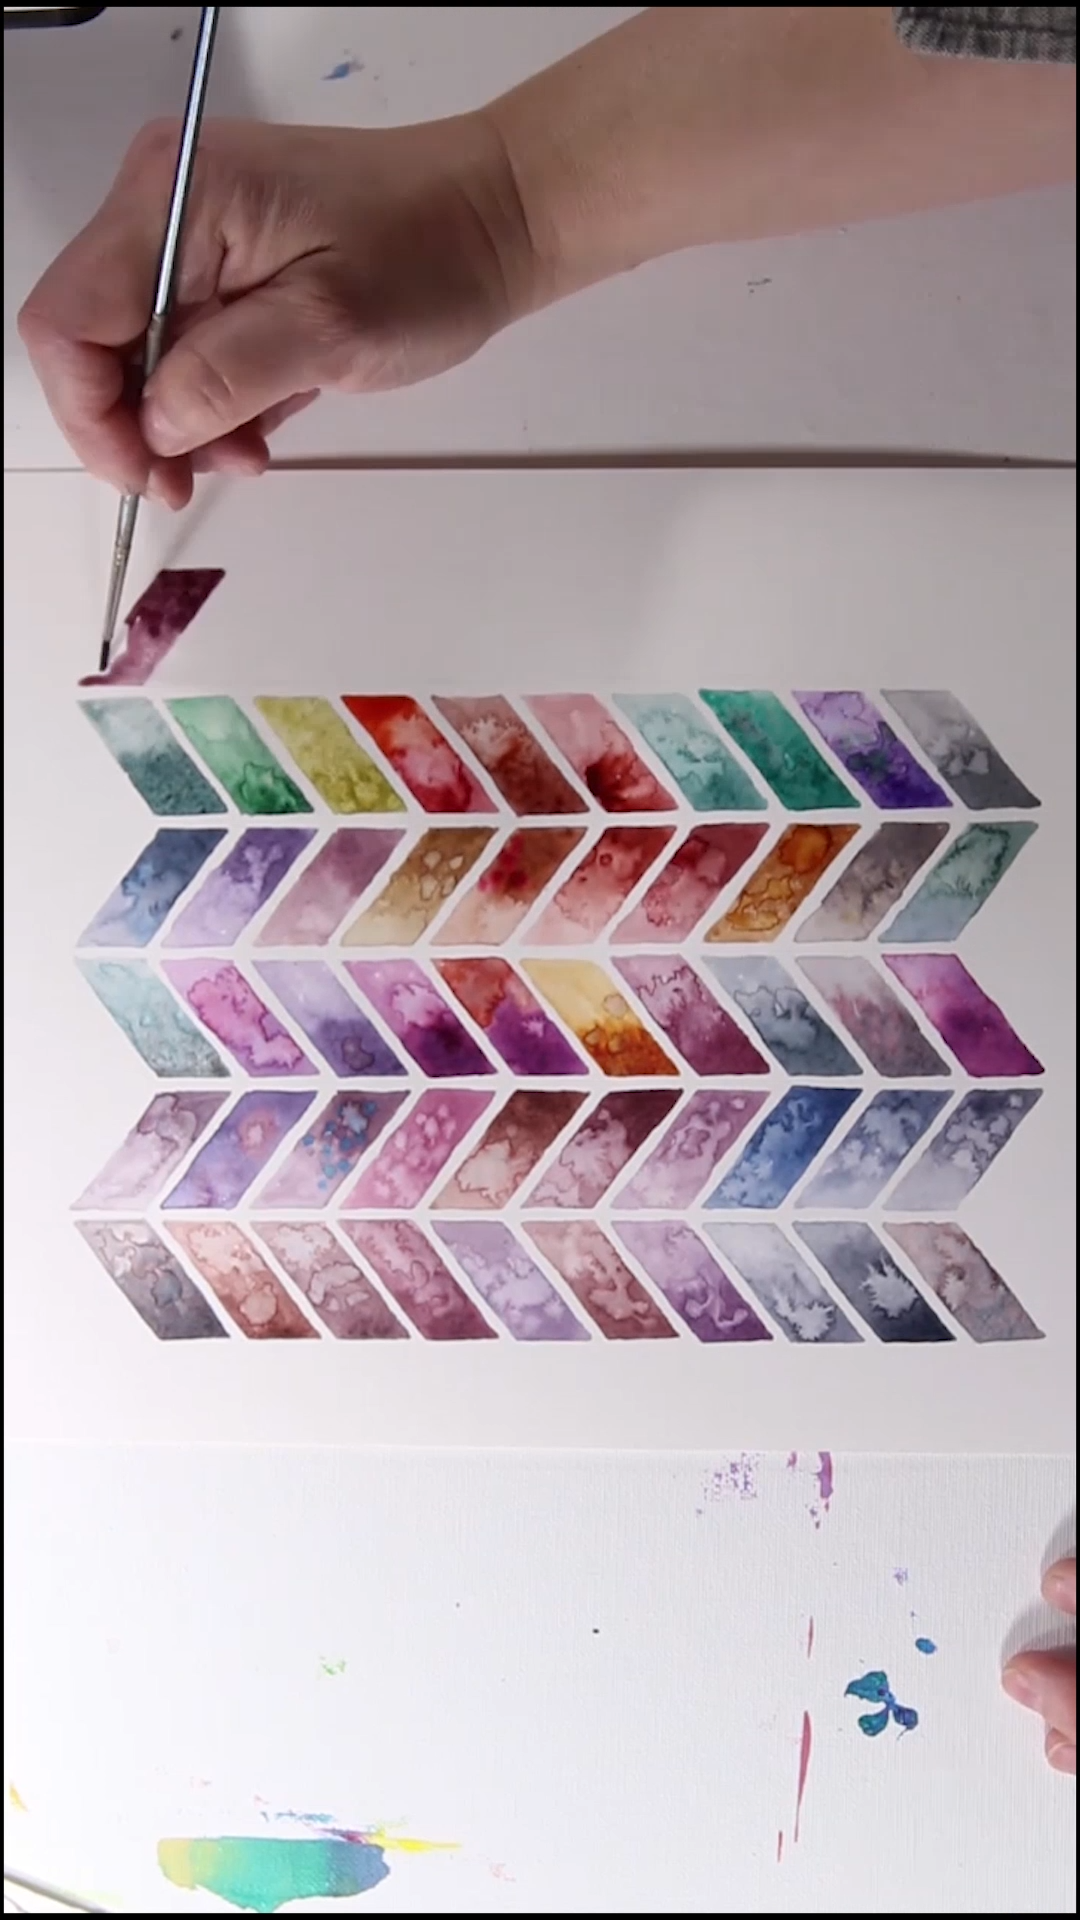 Check out Josie's watercolor pattern templates in her book!